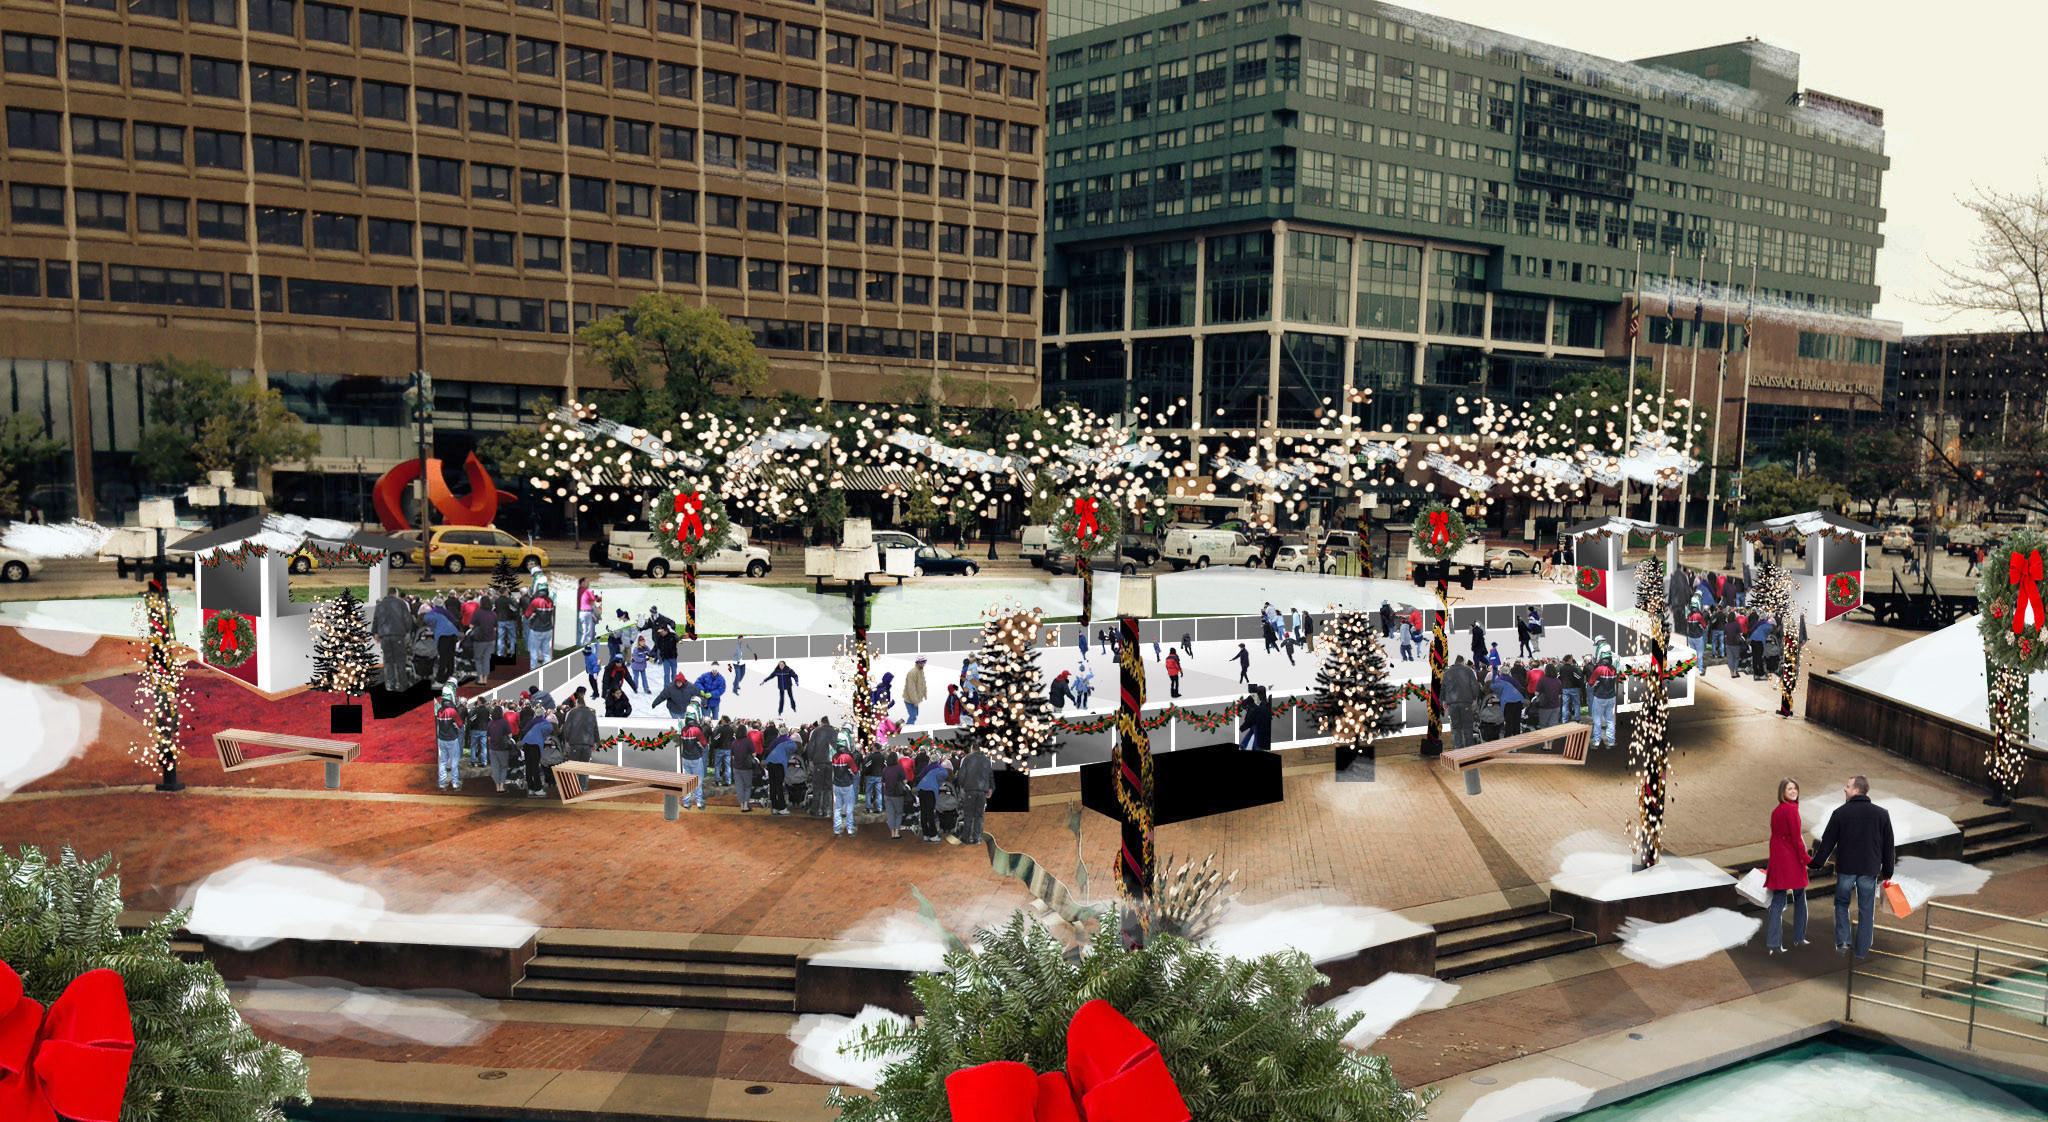 outdoor ice skating rink planned for inner harbor tribunedigital